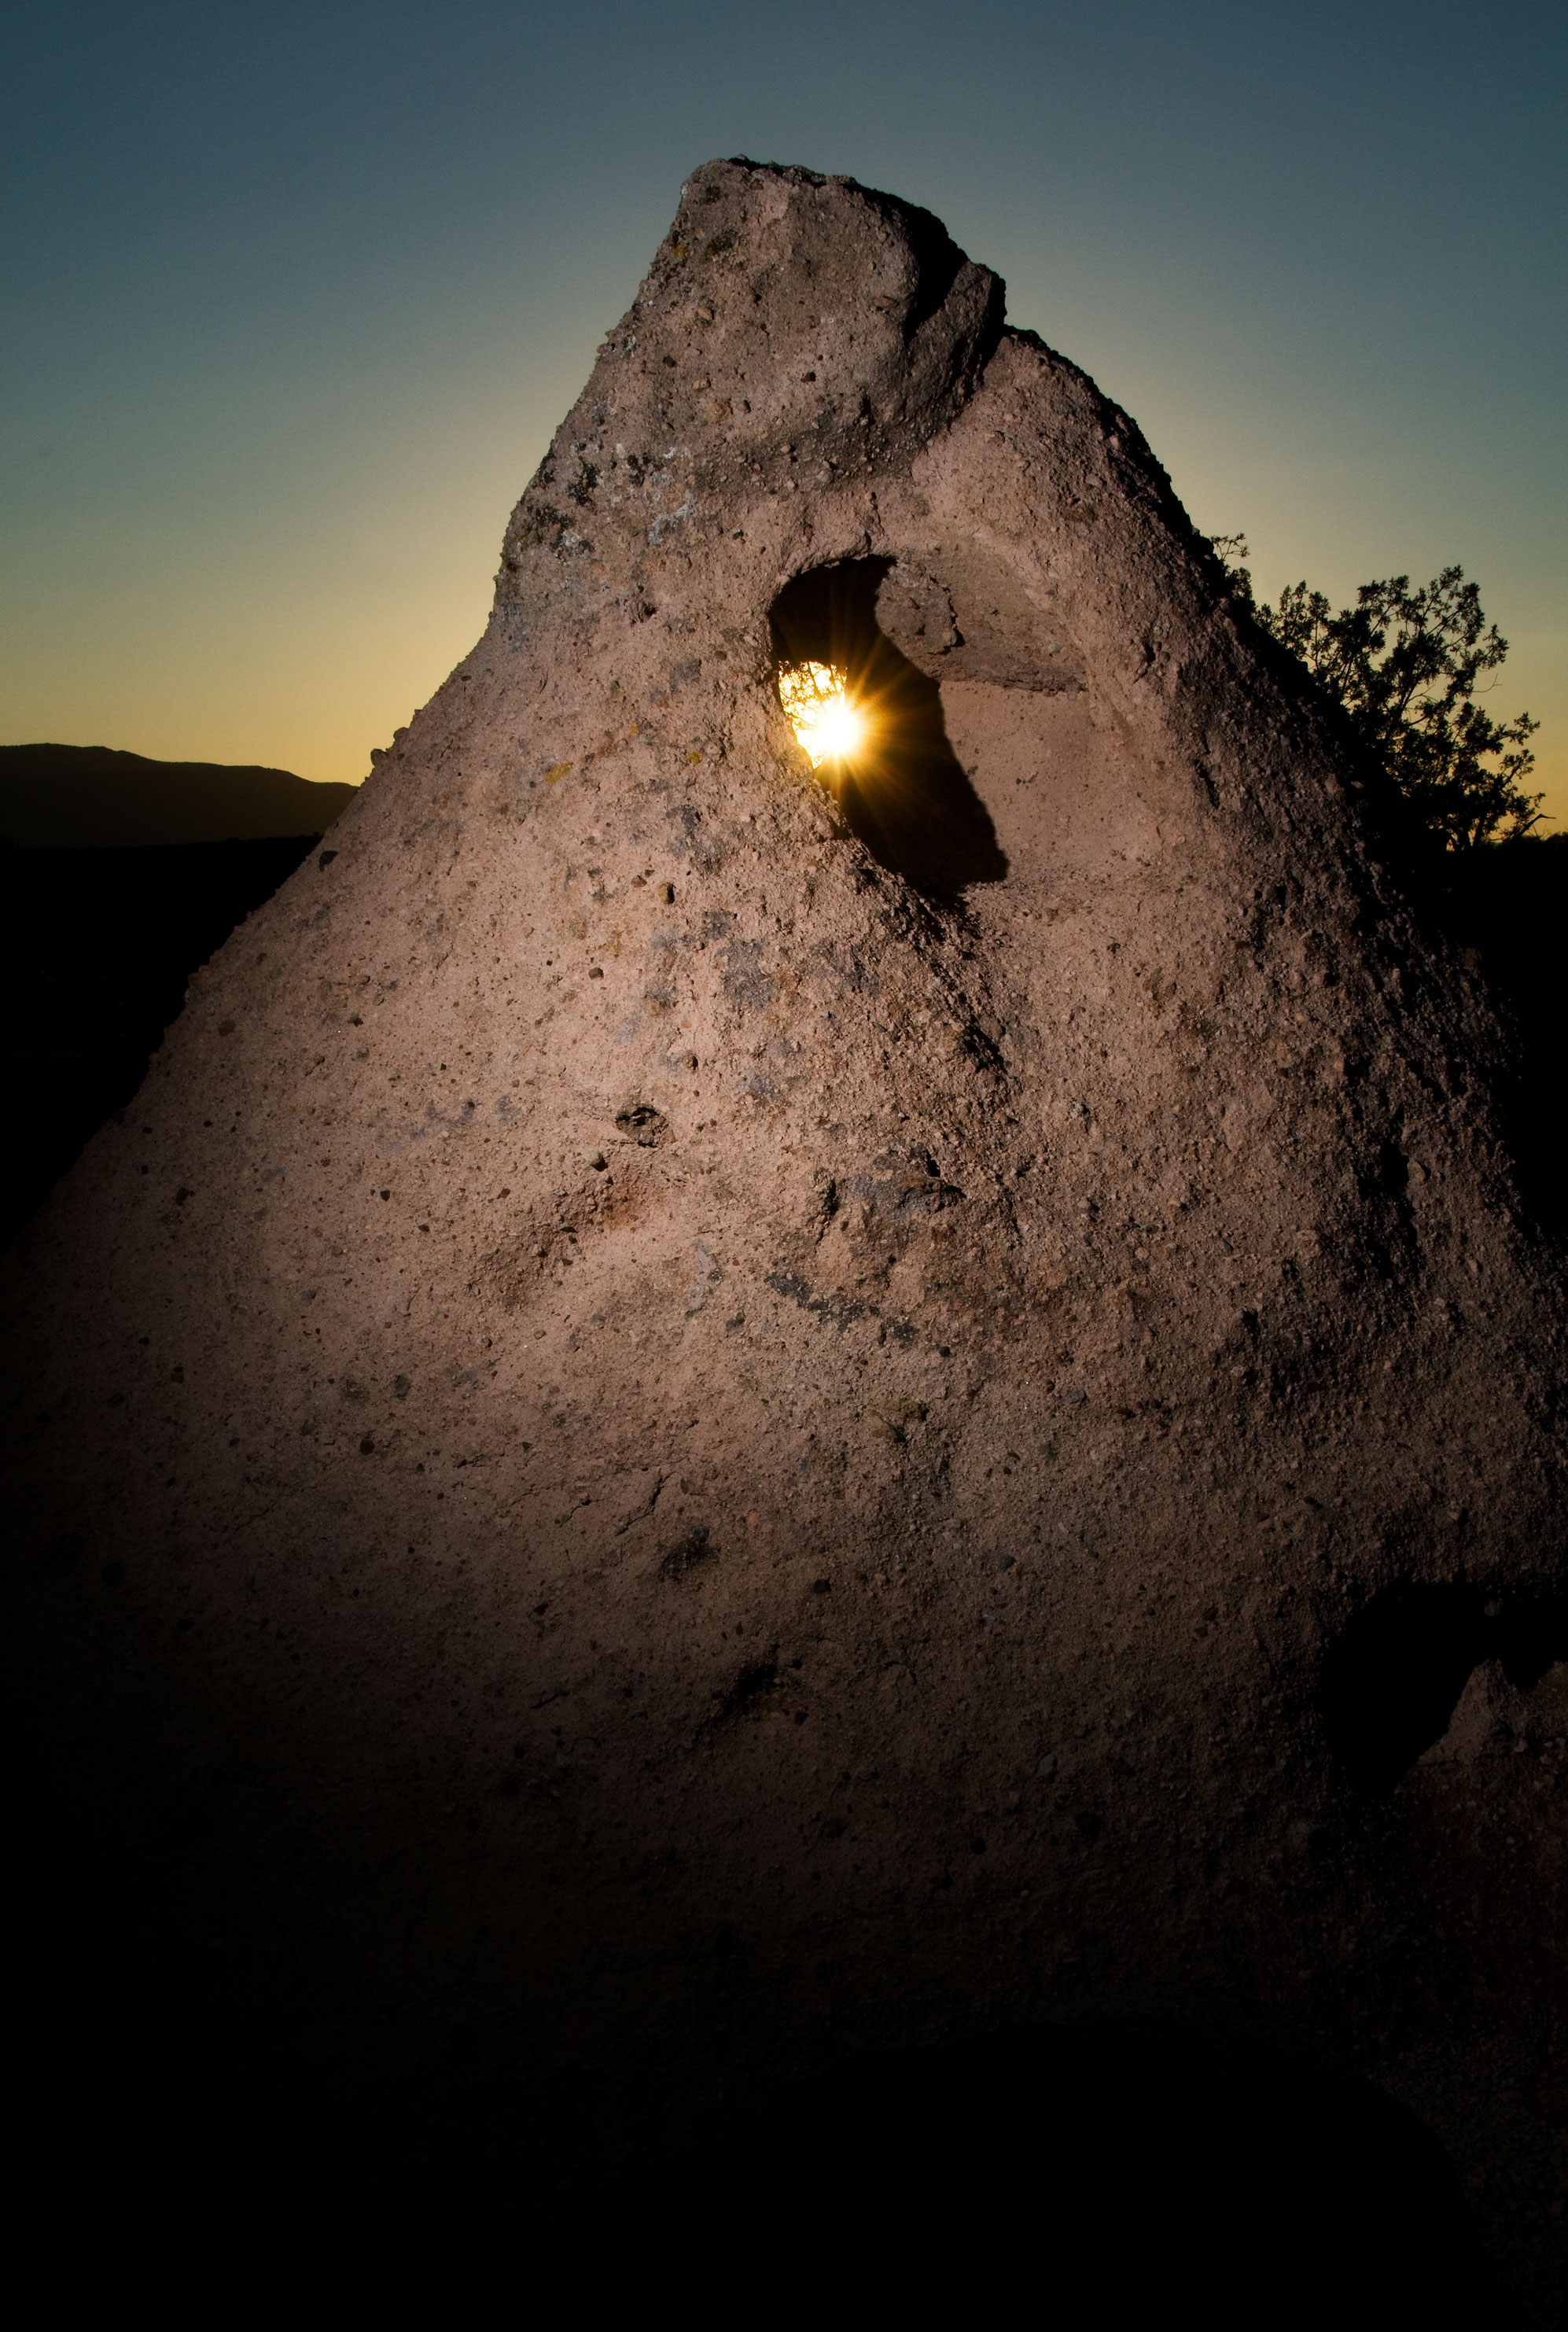 The sun setting behind a Tee Pee rock formation near Camp Verde, Arizona